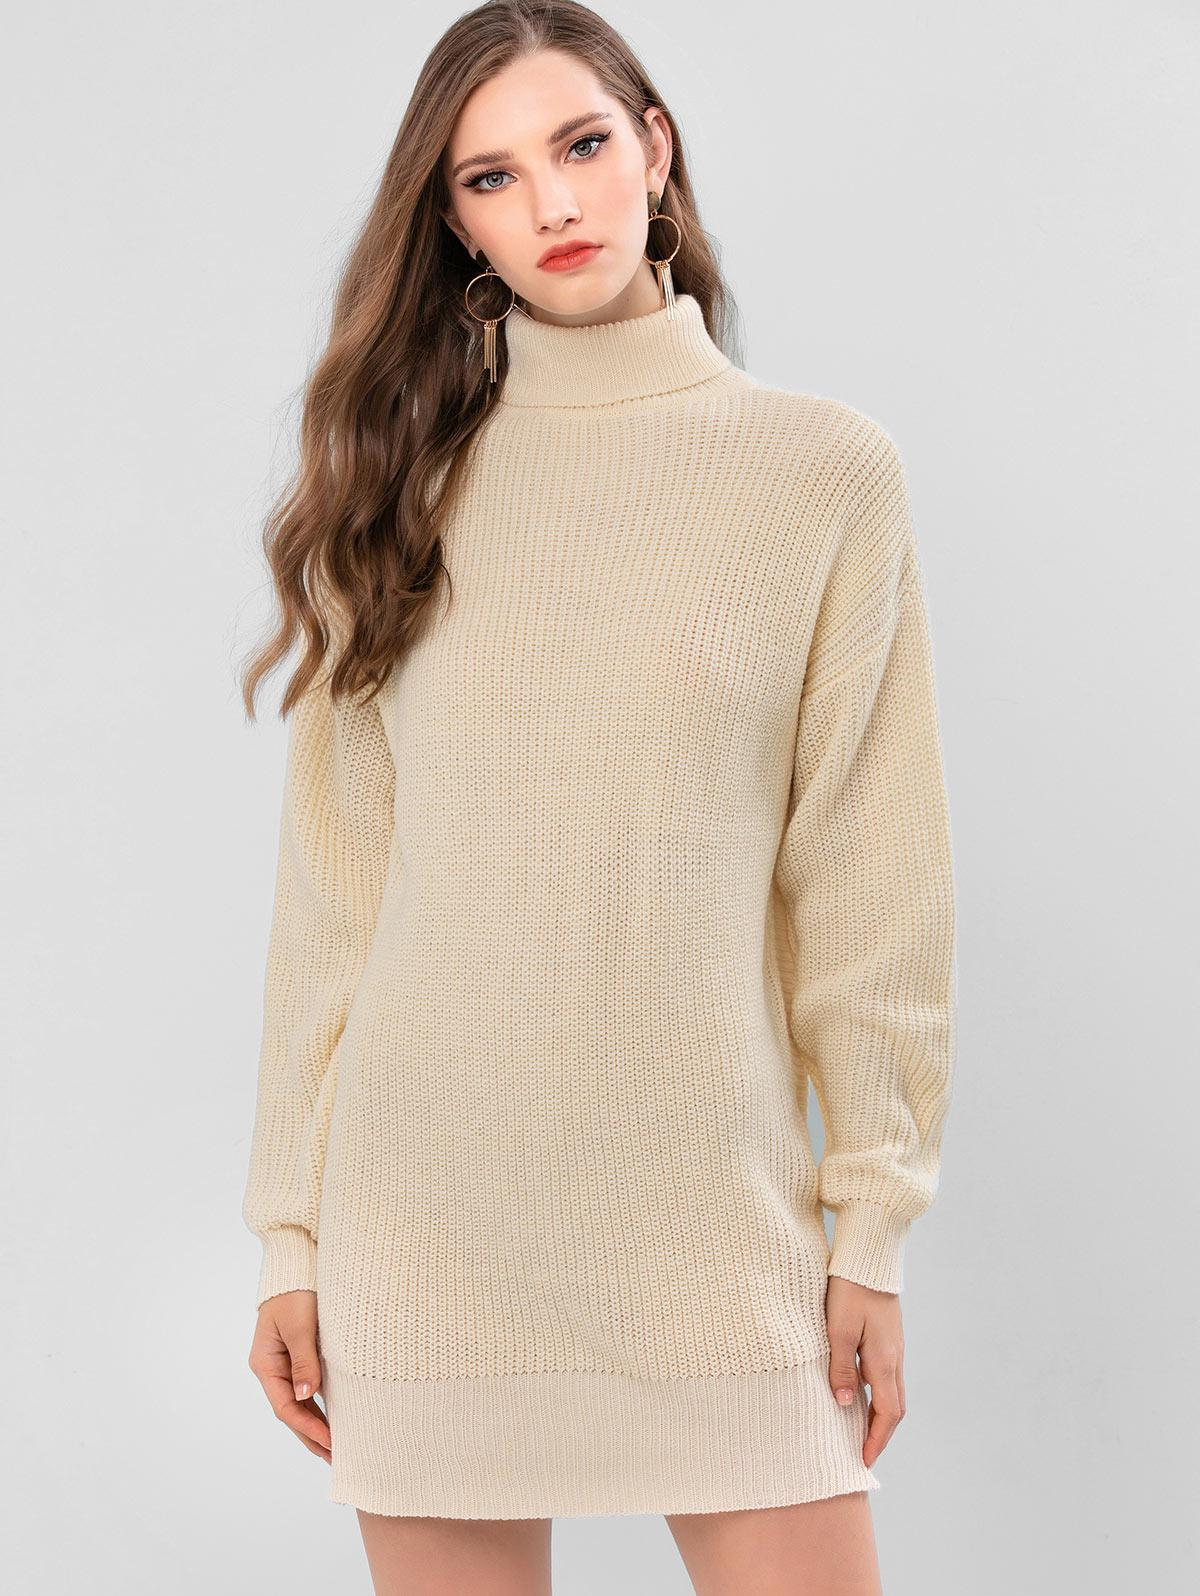 ZAFUL Turtleneck Drop Shoulder Tunic Sweater Dress